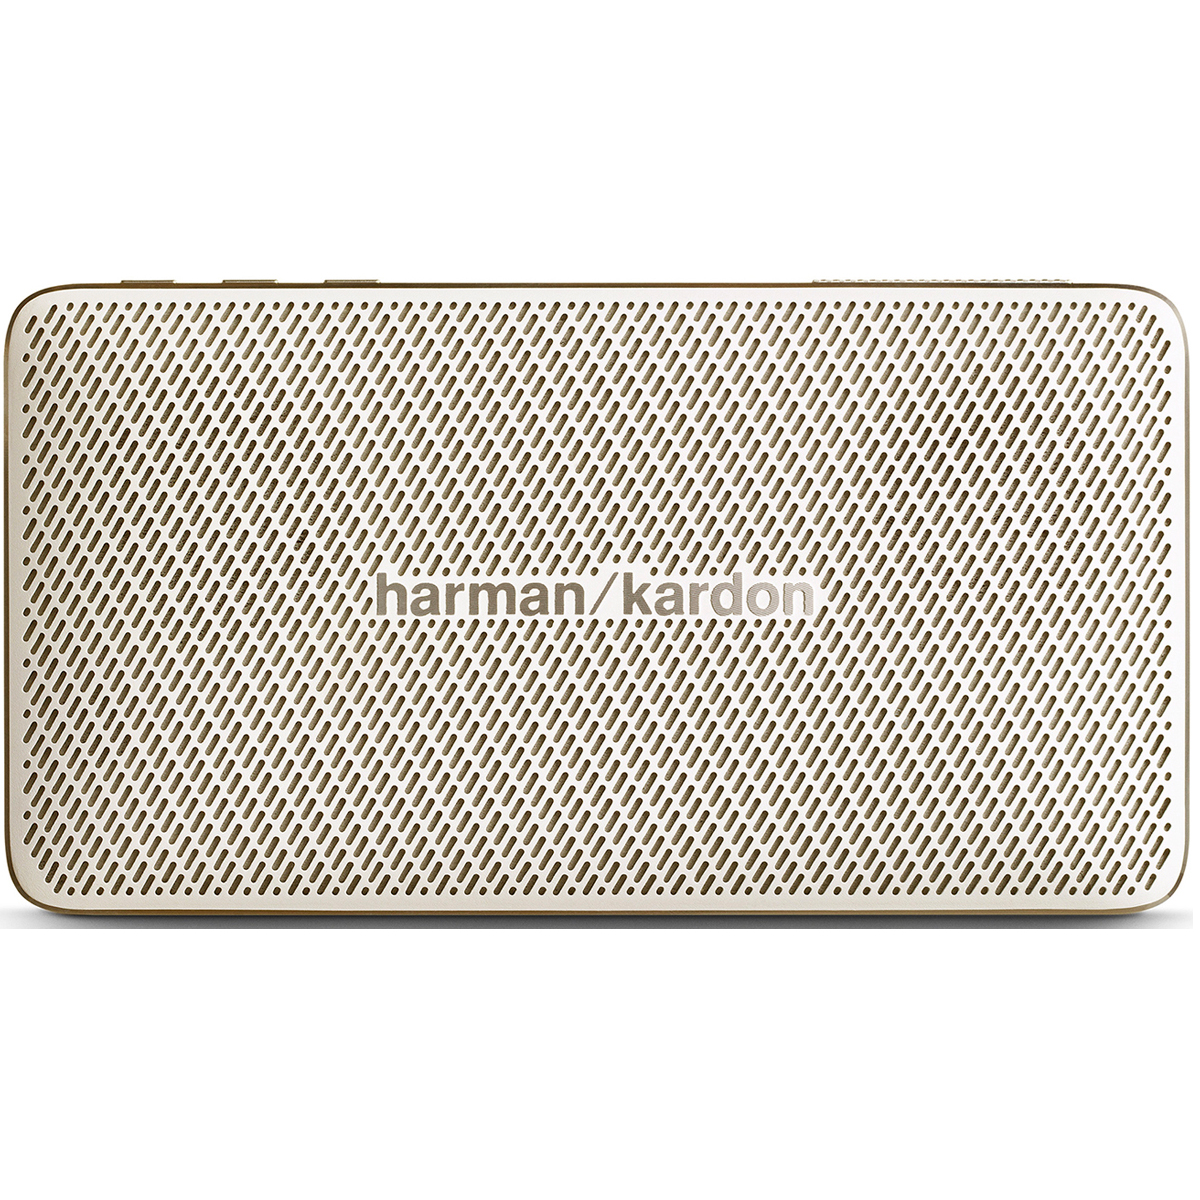 Harman Kardon TV, Audio & Electronics